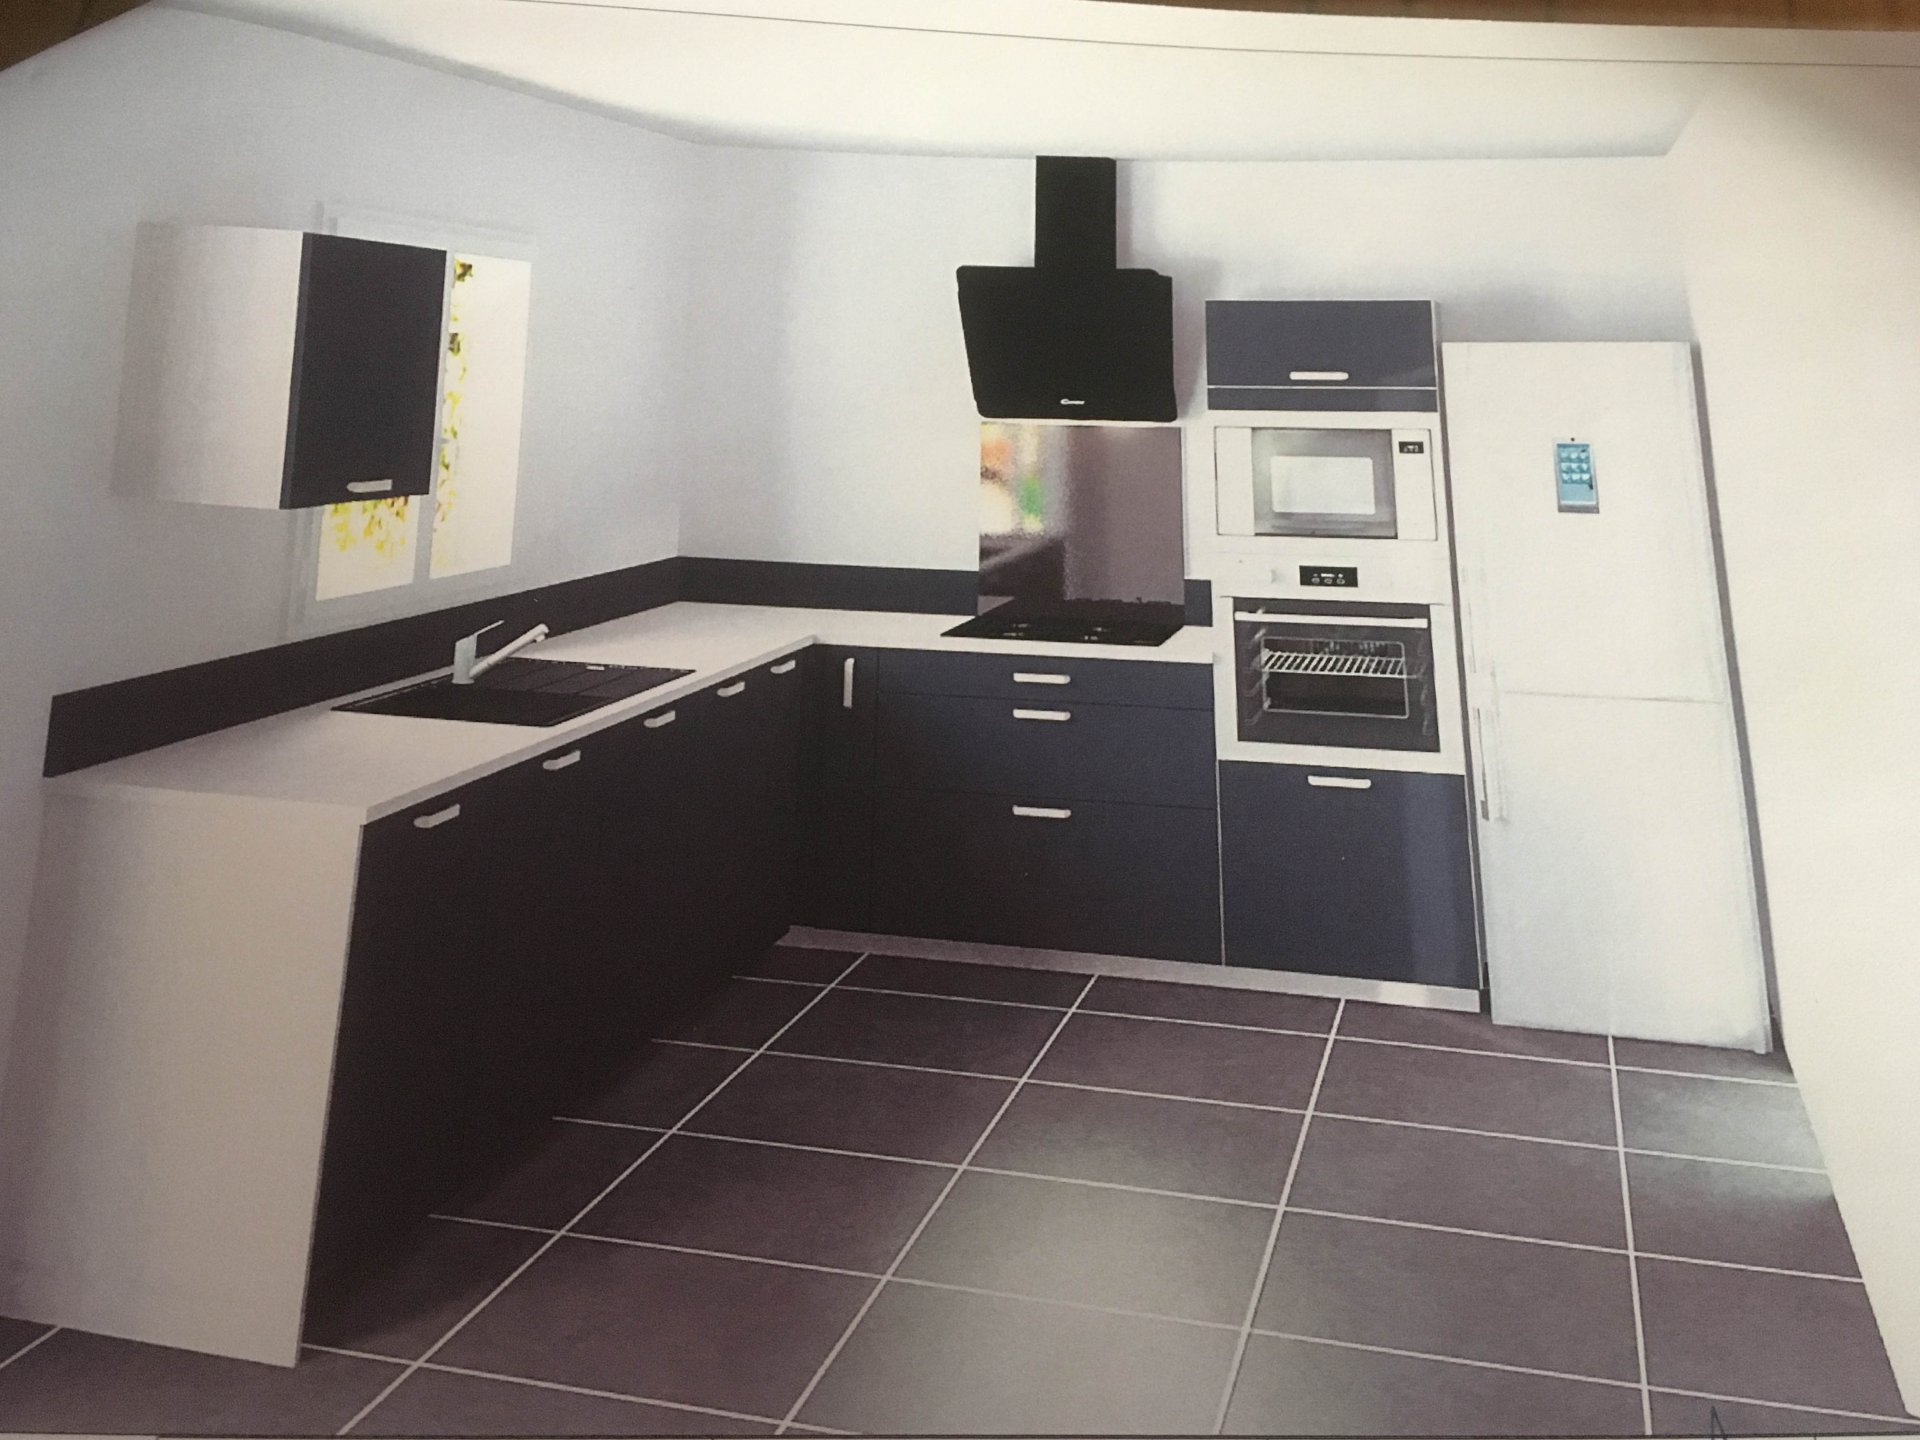 Fully equipped kitchen (when it will be installed).